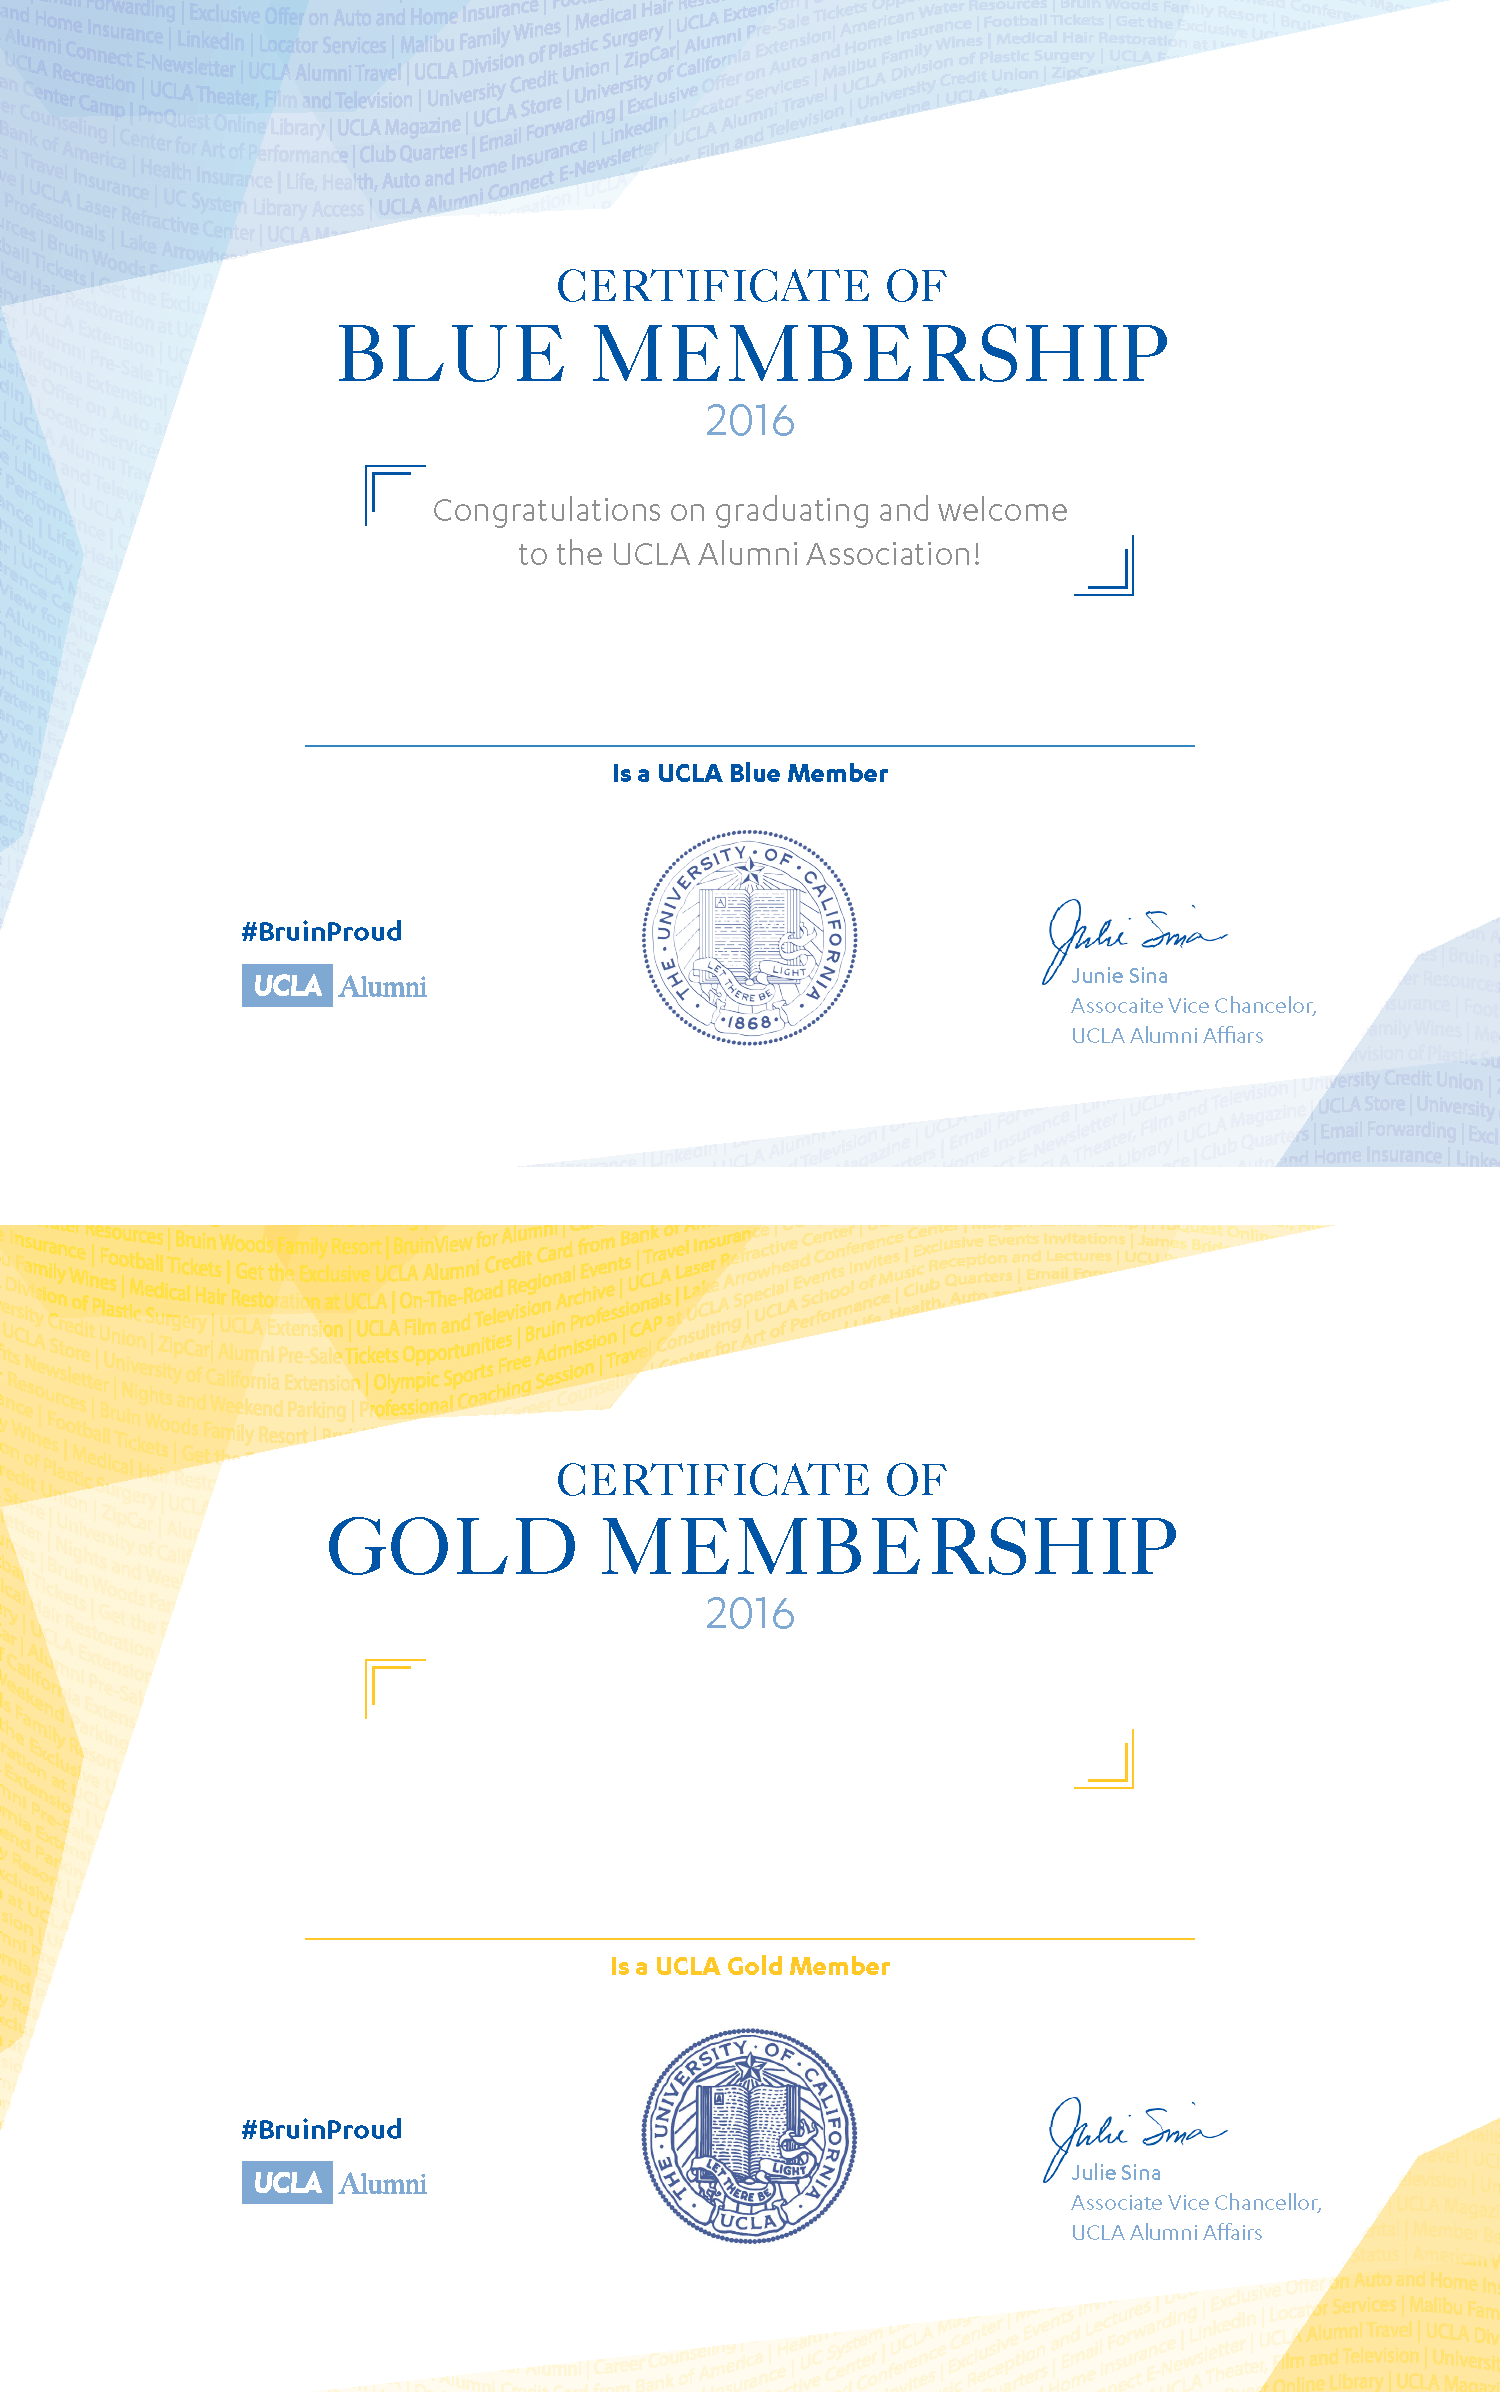 Certificates given alongside the purchase of UCLA Alumni memberships. The waves in the design are created using descriptions of the benefits that accompany membership.